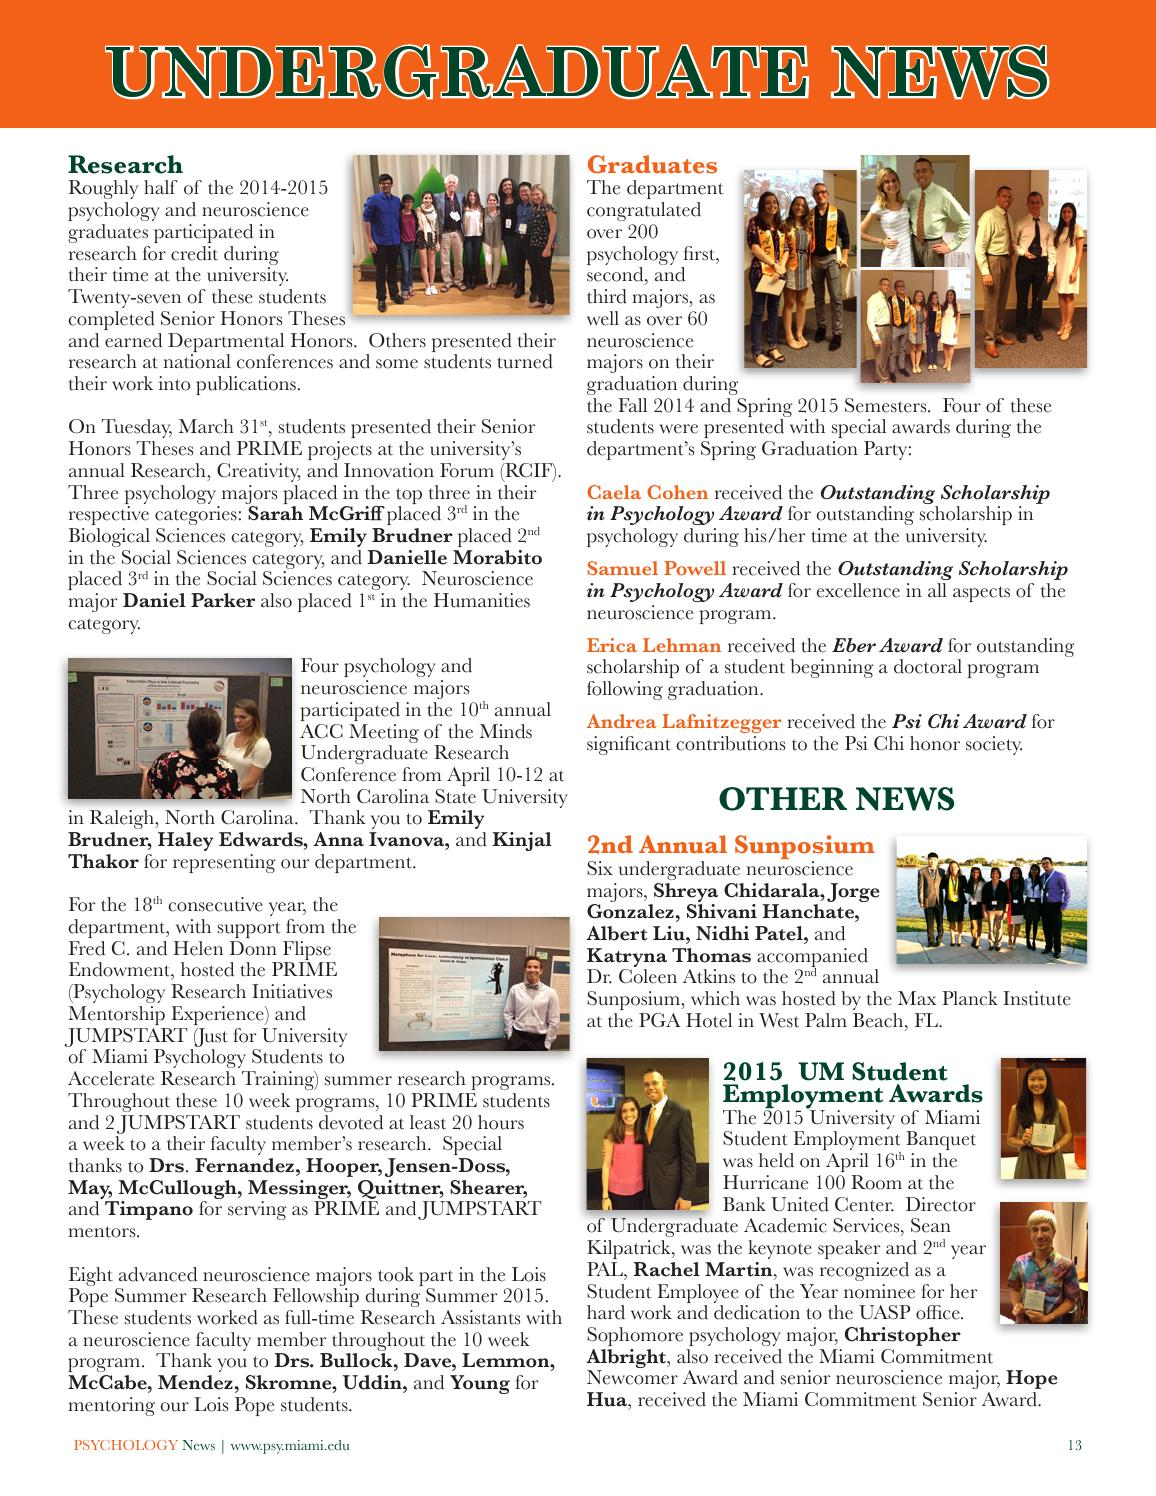 Um psychology news 2015 by University of Miami - College of